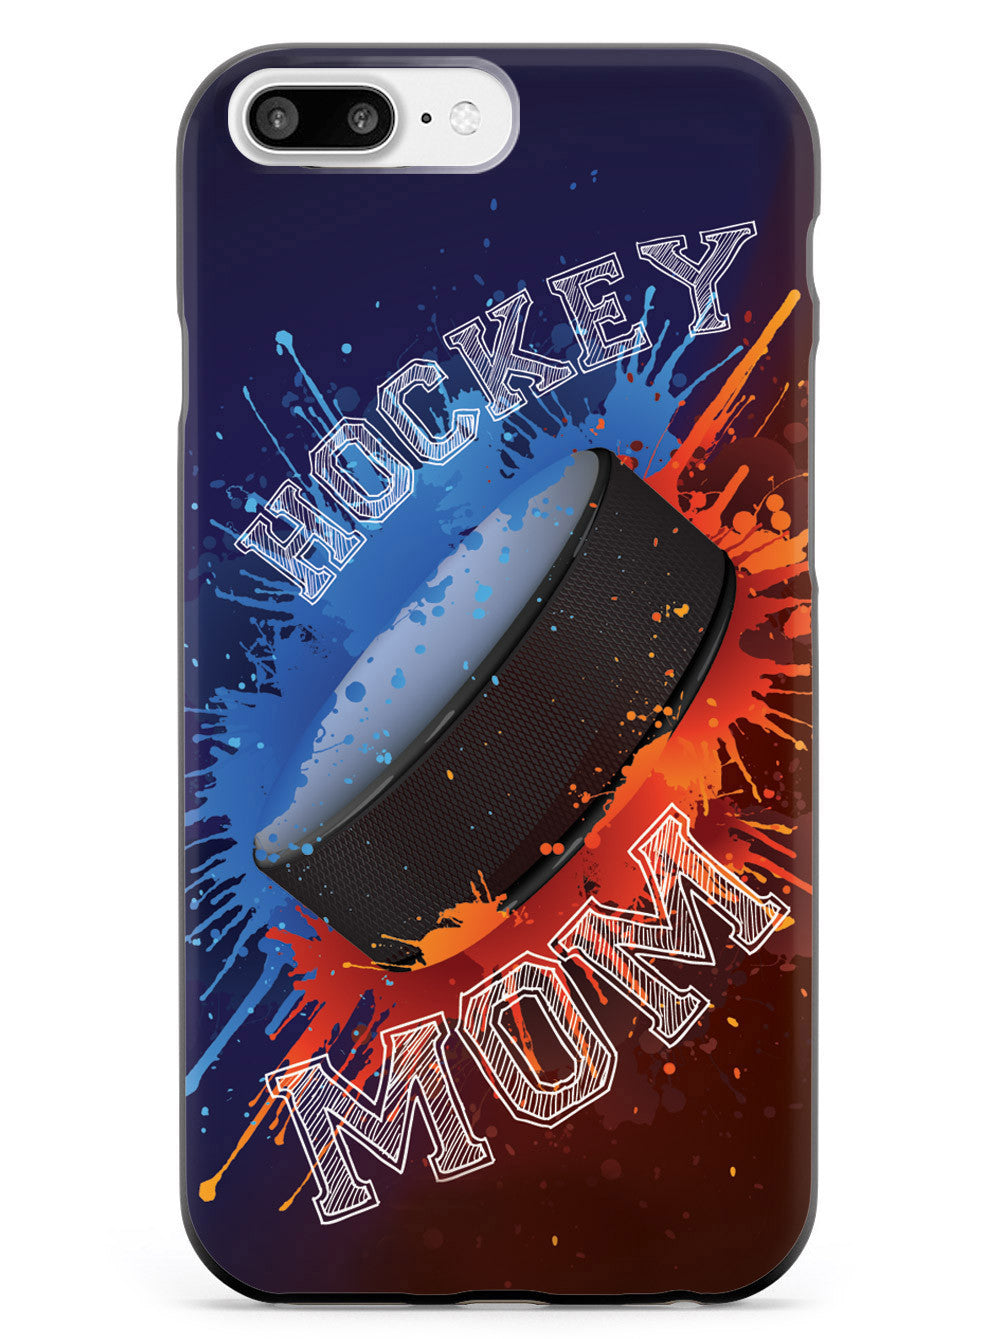 Hockey Mom - Slap Shot! Puck Case